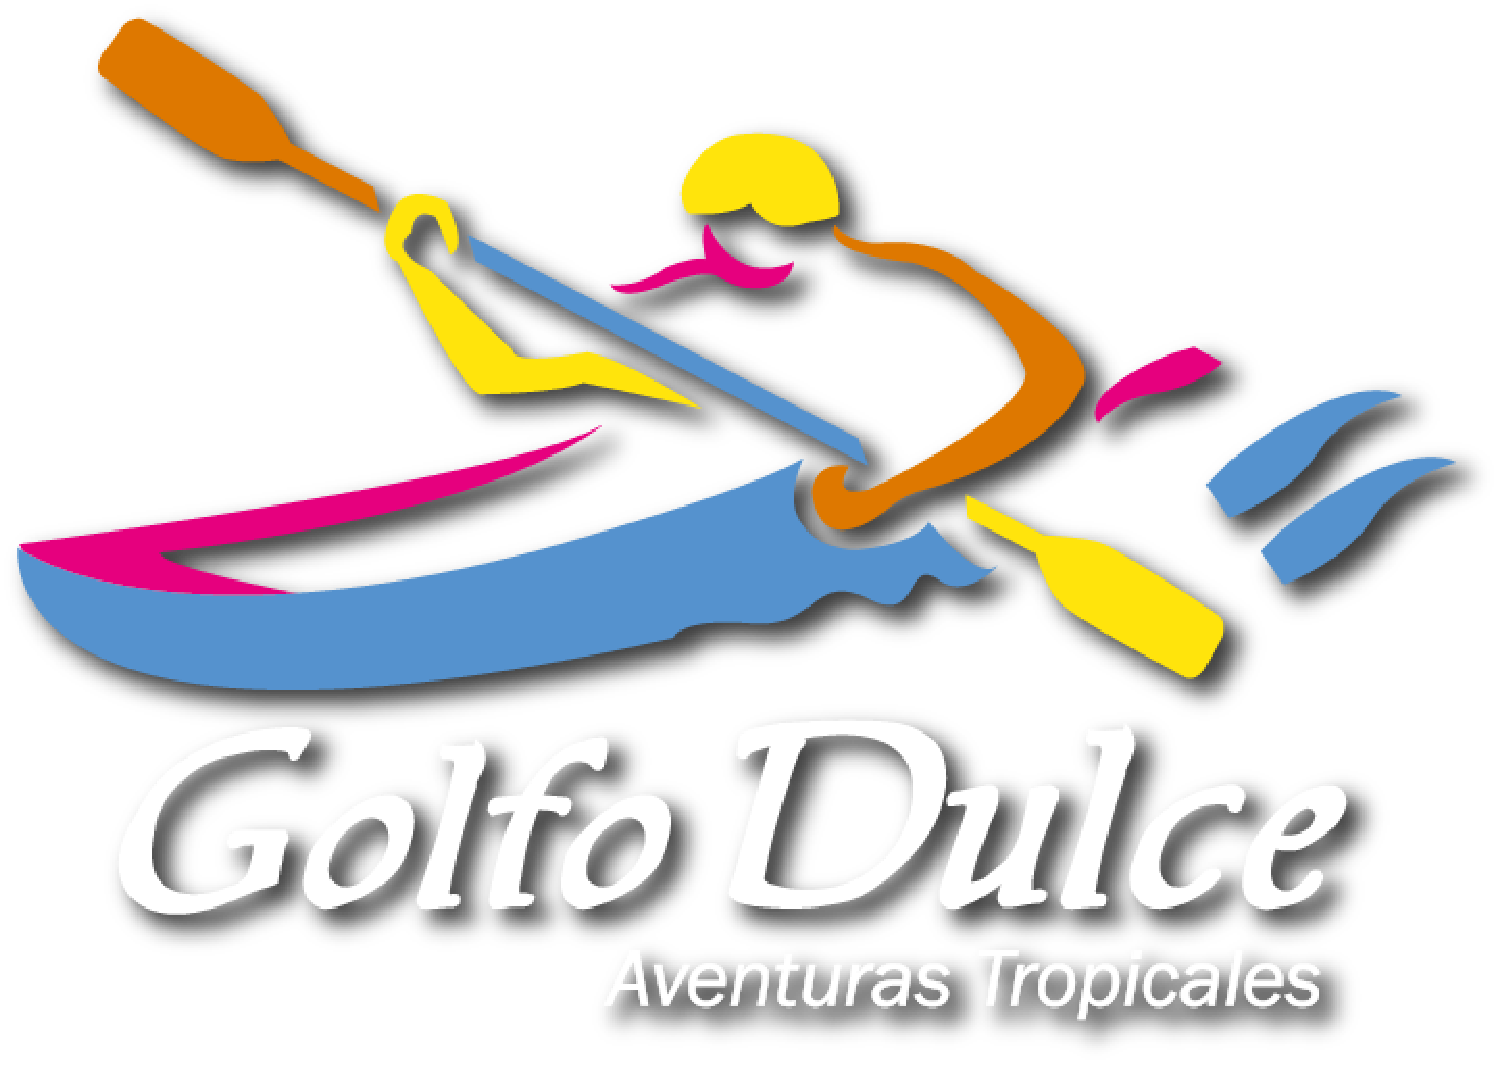 Aventuras Tropicales Golfo Dulce